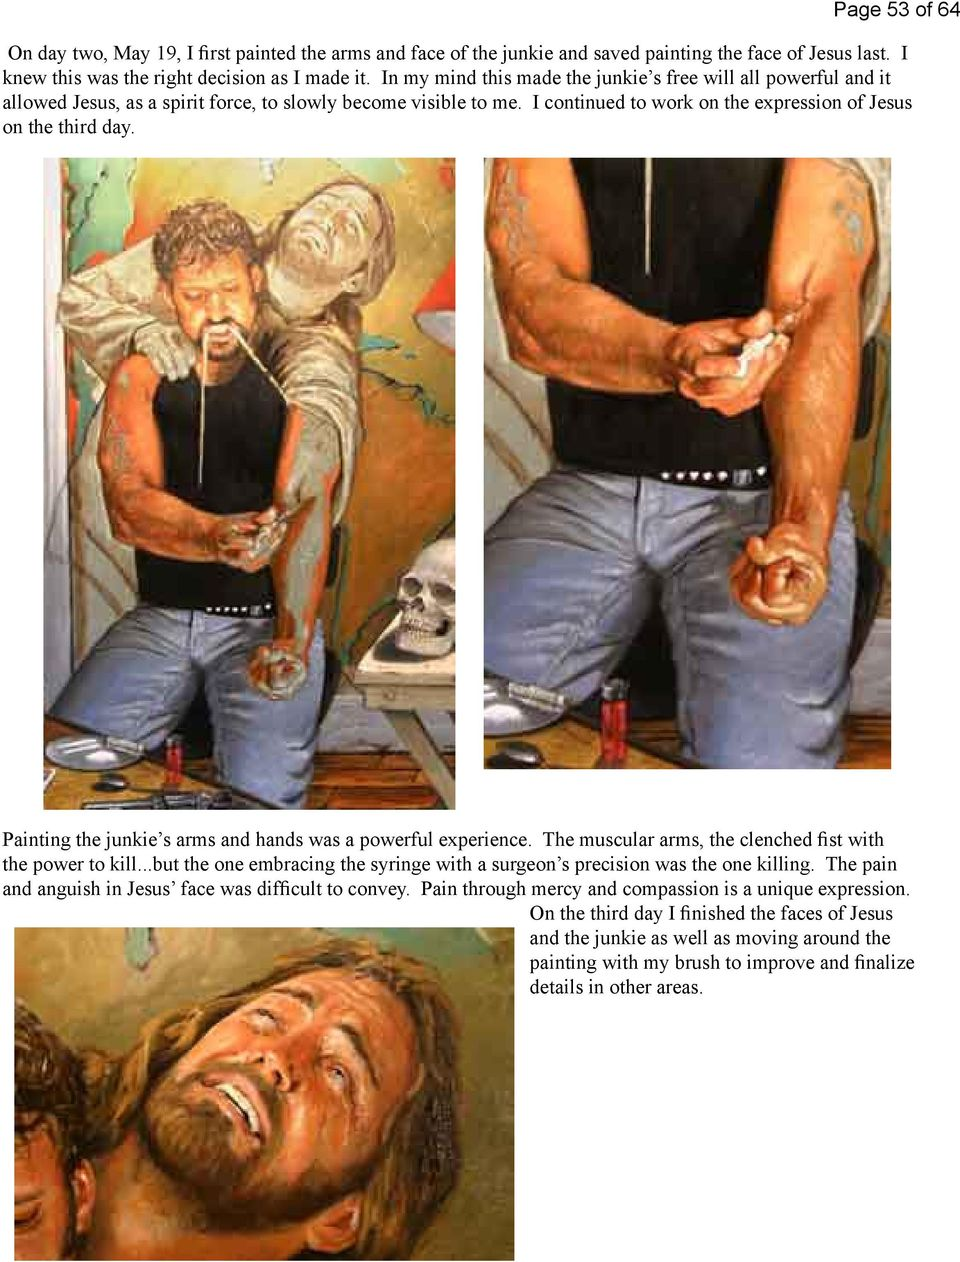 Painting the junkie s arms and hands was a powerful experience. The muscular arms, the clenched fist with the power to kill.